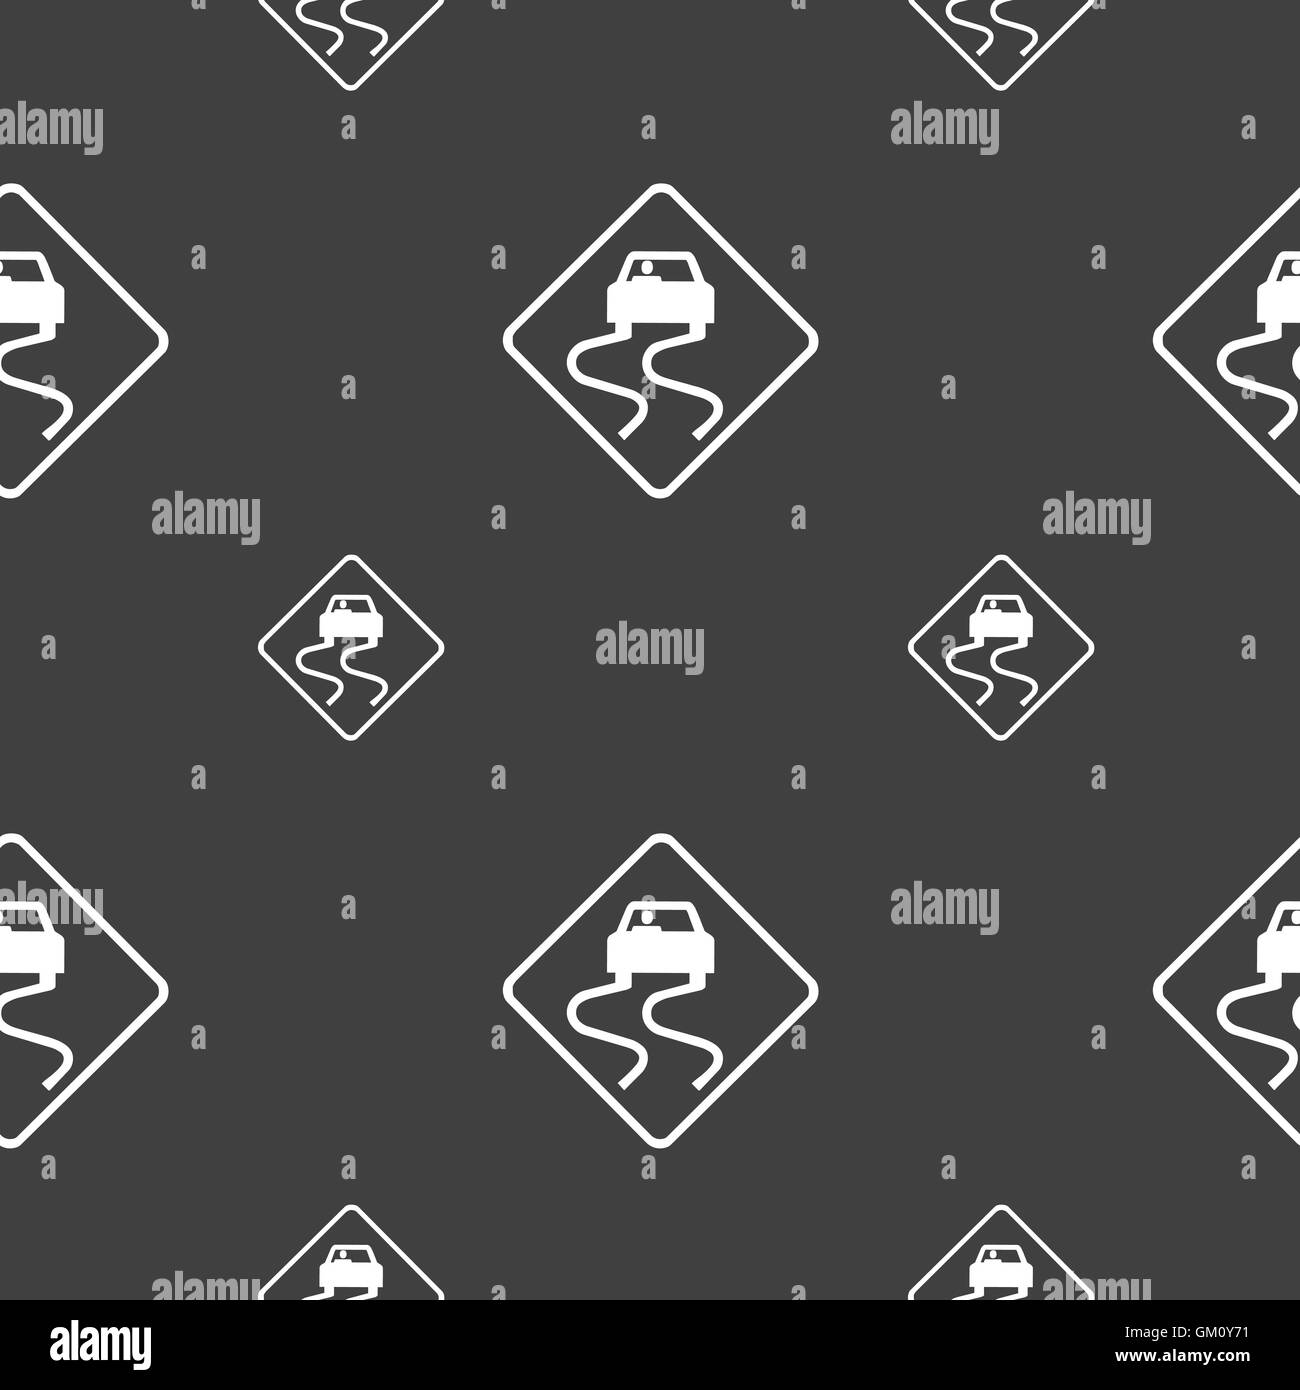 Road slippery icon sign. Seamless pattern on a gray background. Vector - Stock Image